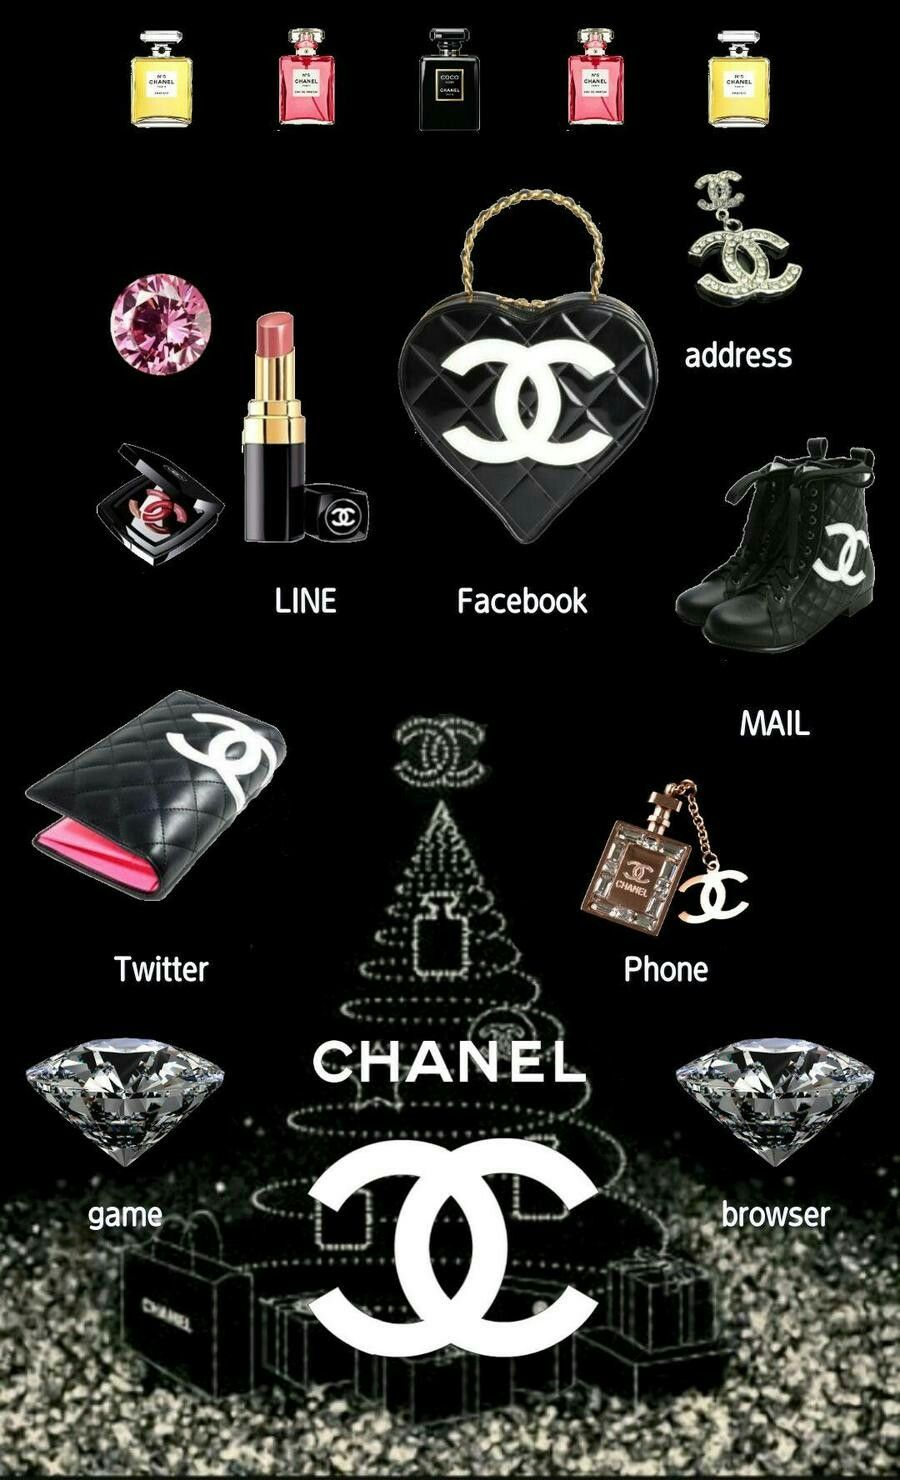 Pin By Vicki On Coco Chanel Chanel Wallpapers Cellphone